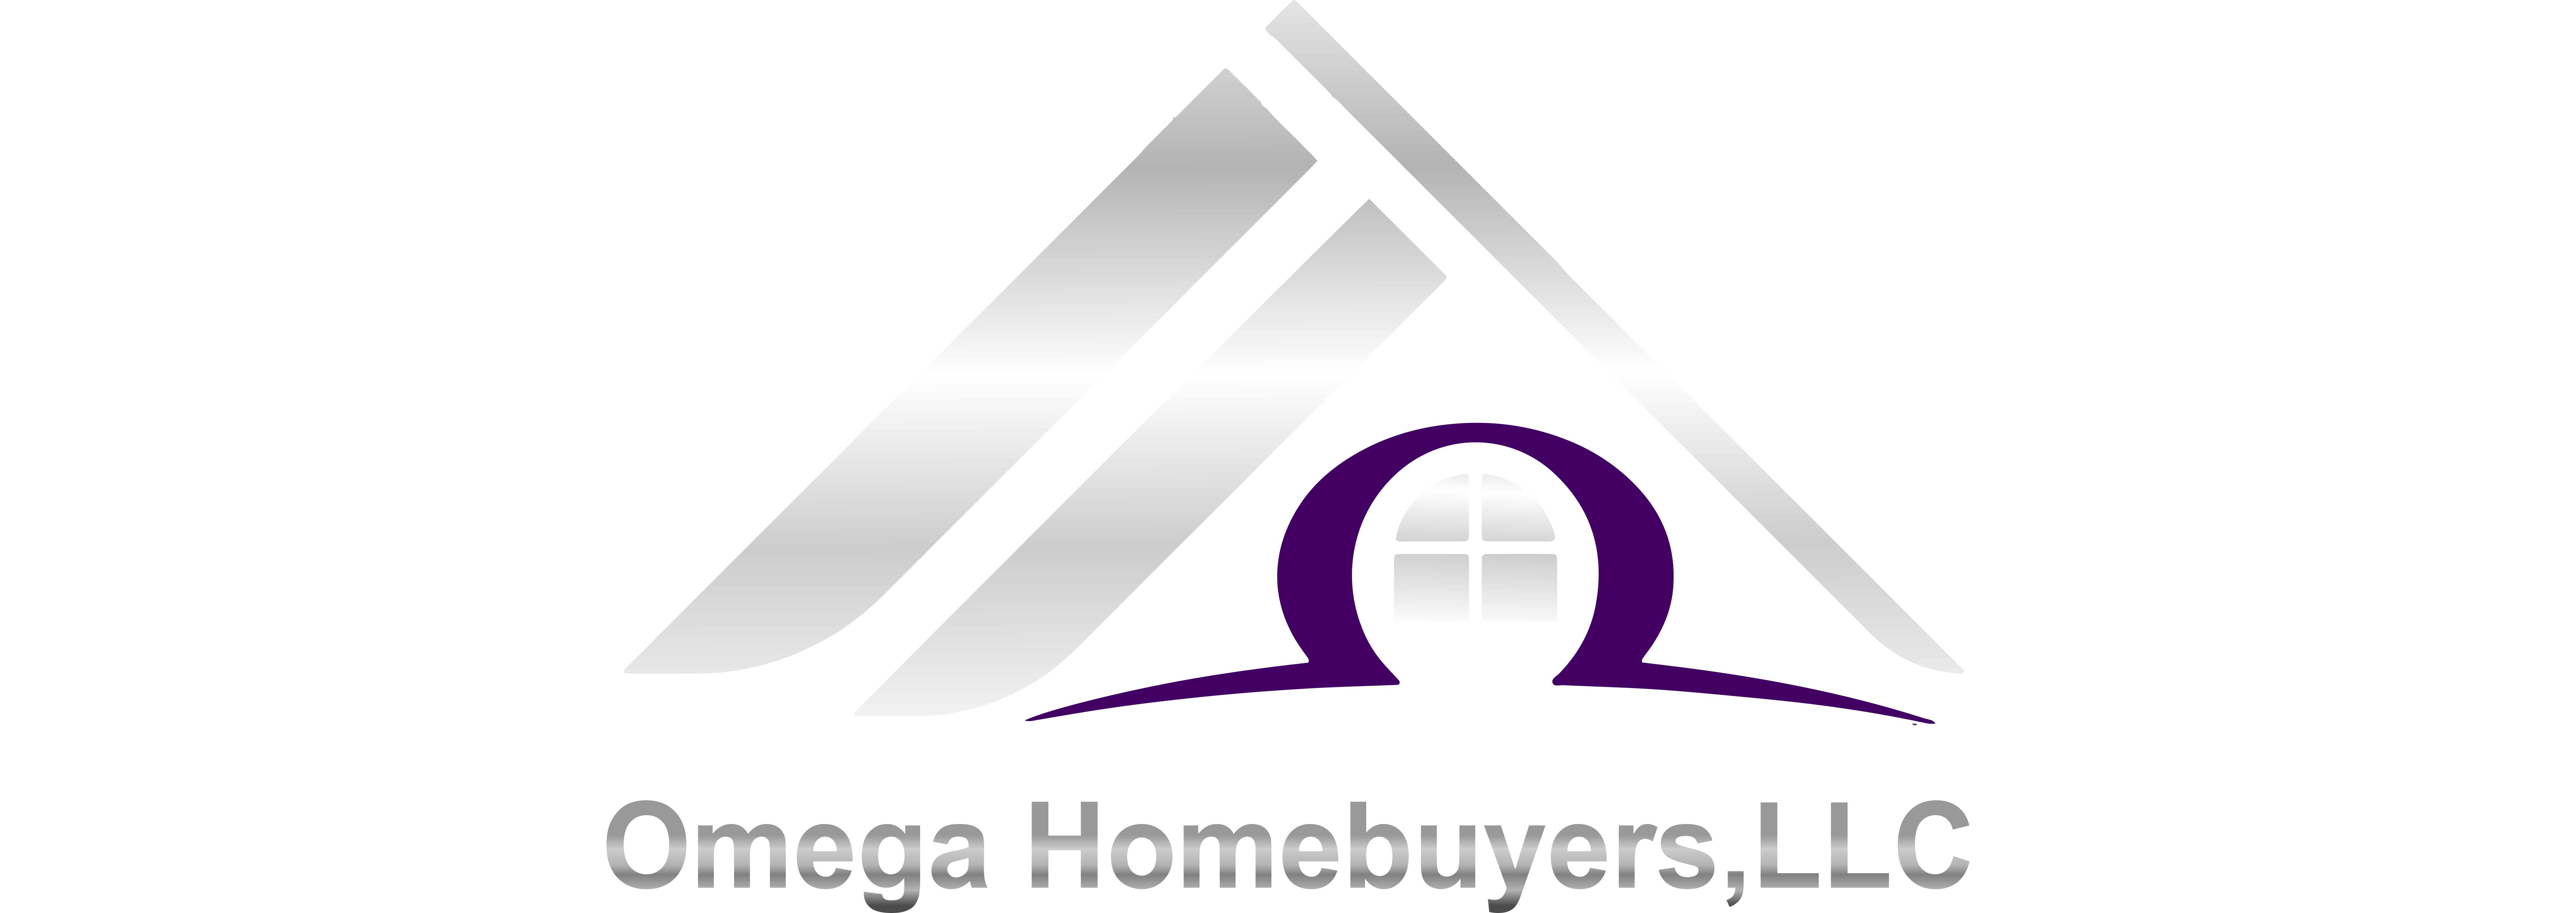 Omega Homebuyers, LLC